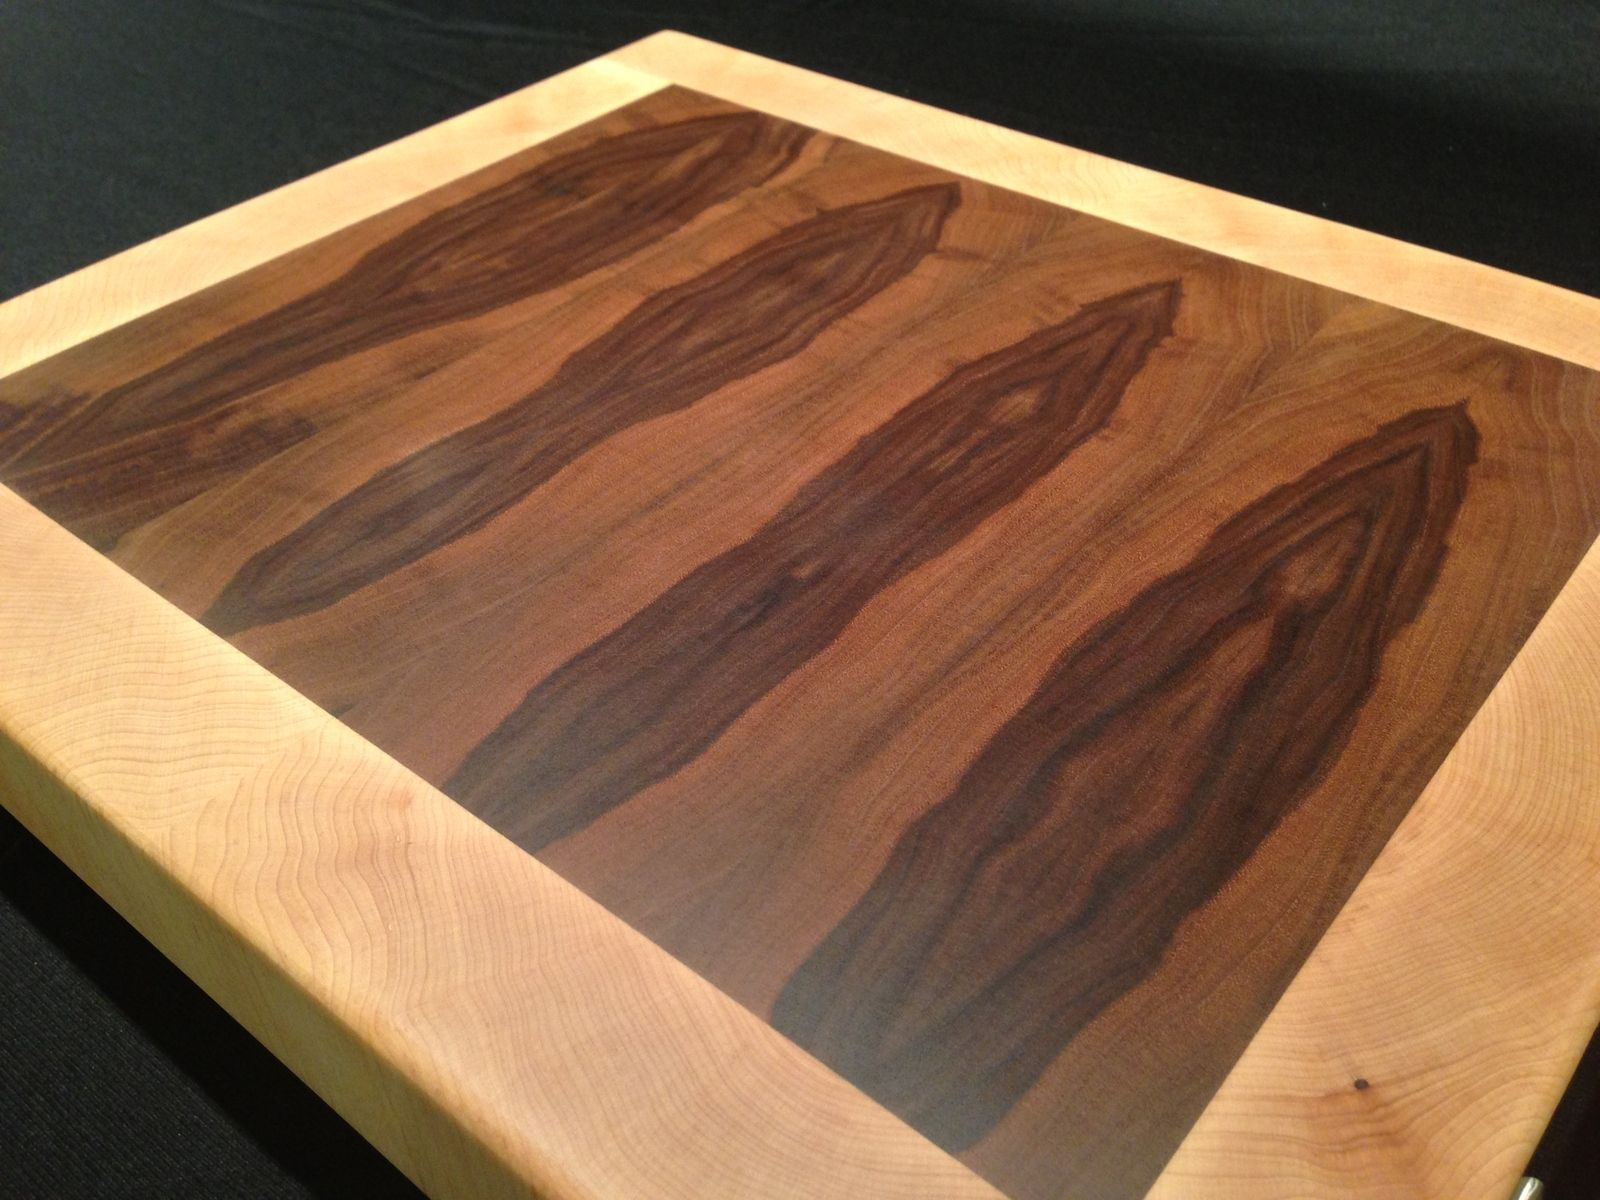 Custom End Grain Cutting Boards By Magnolia Place Woodworks CustomMadecom